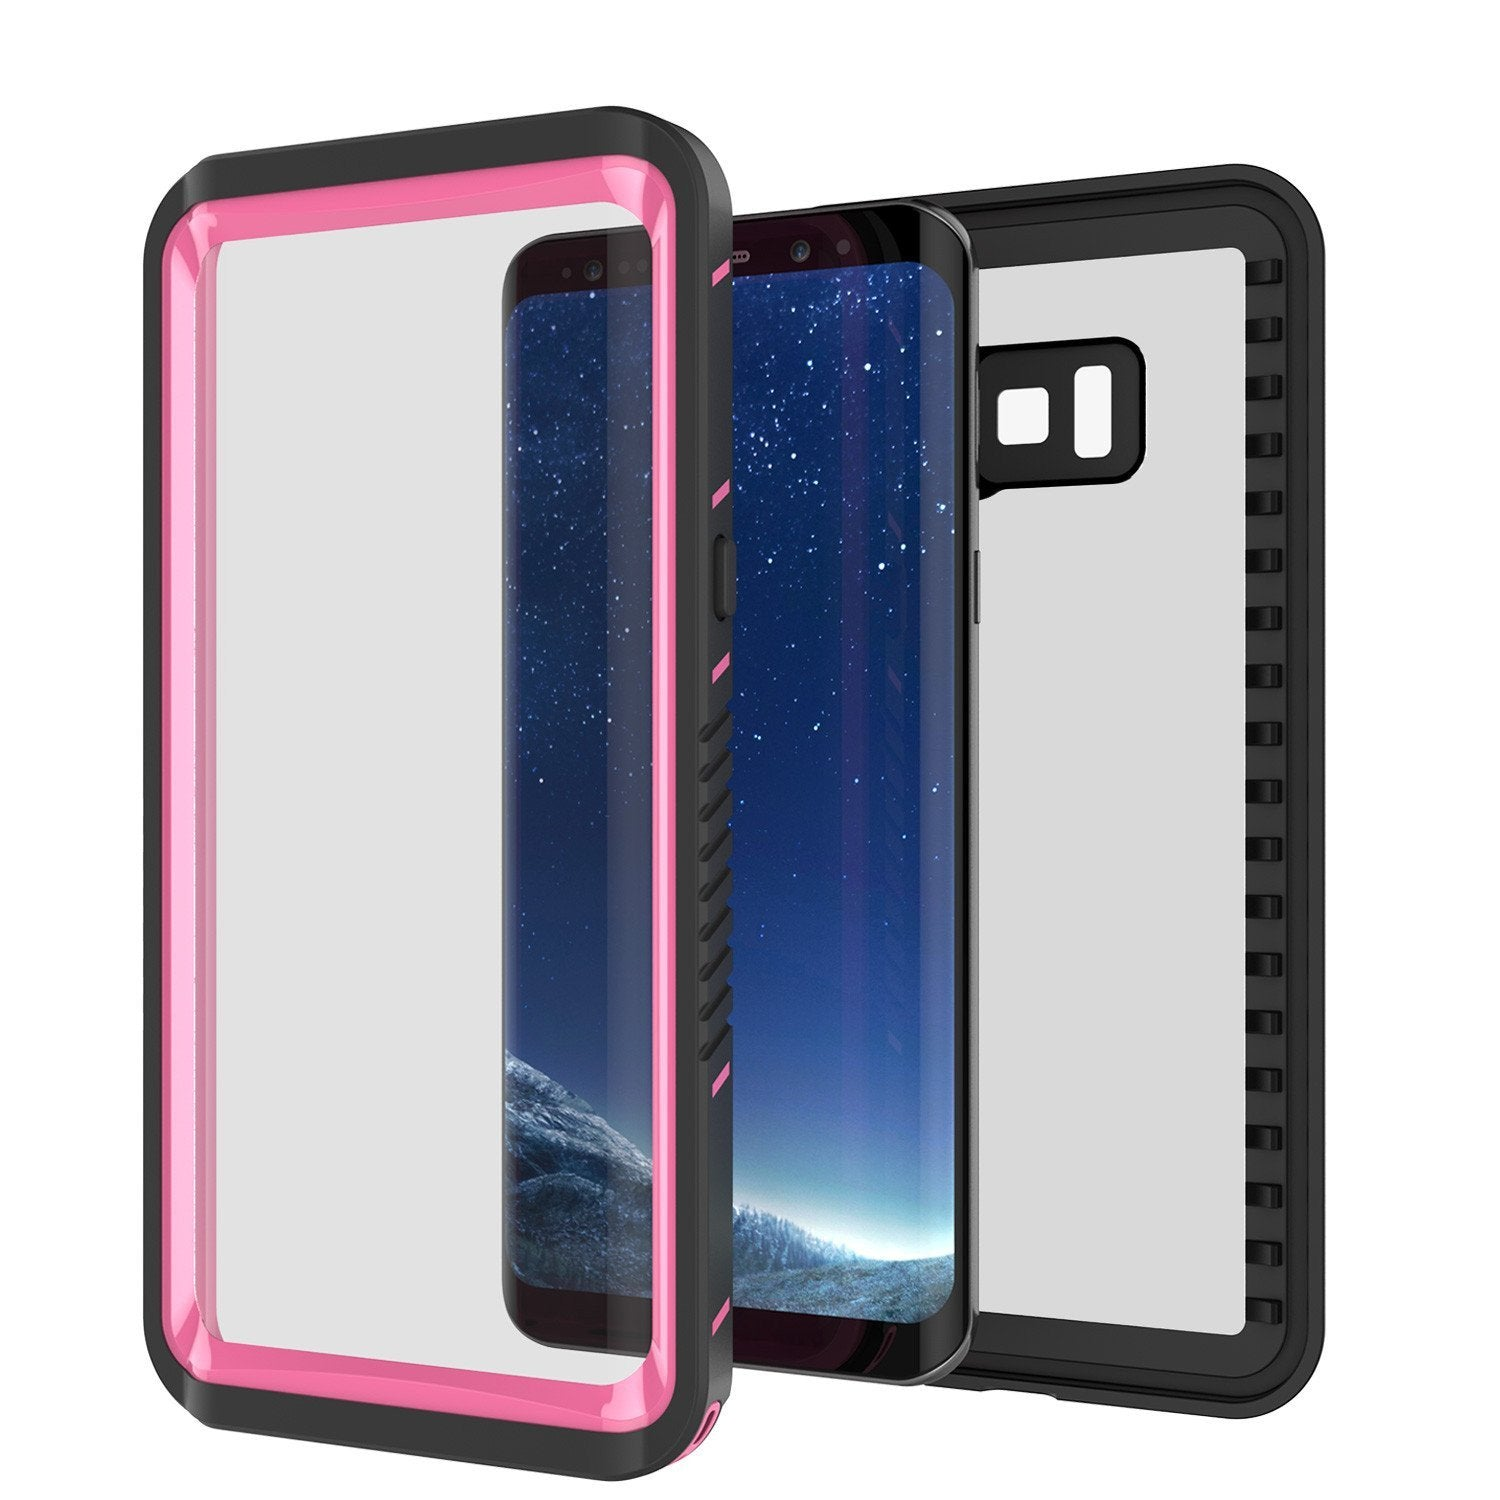 Galaxy S8 Plus Punkcase Extreme Series Slim Fit Armor Case, Pink